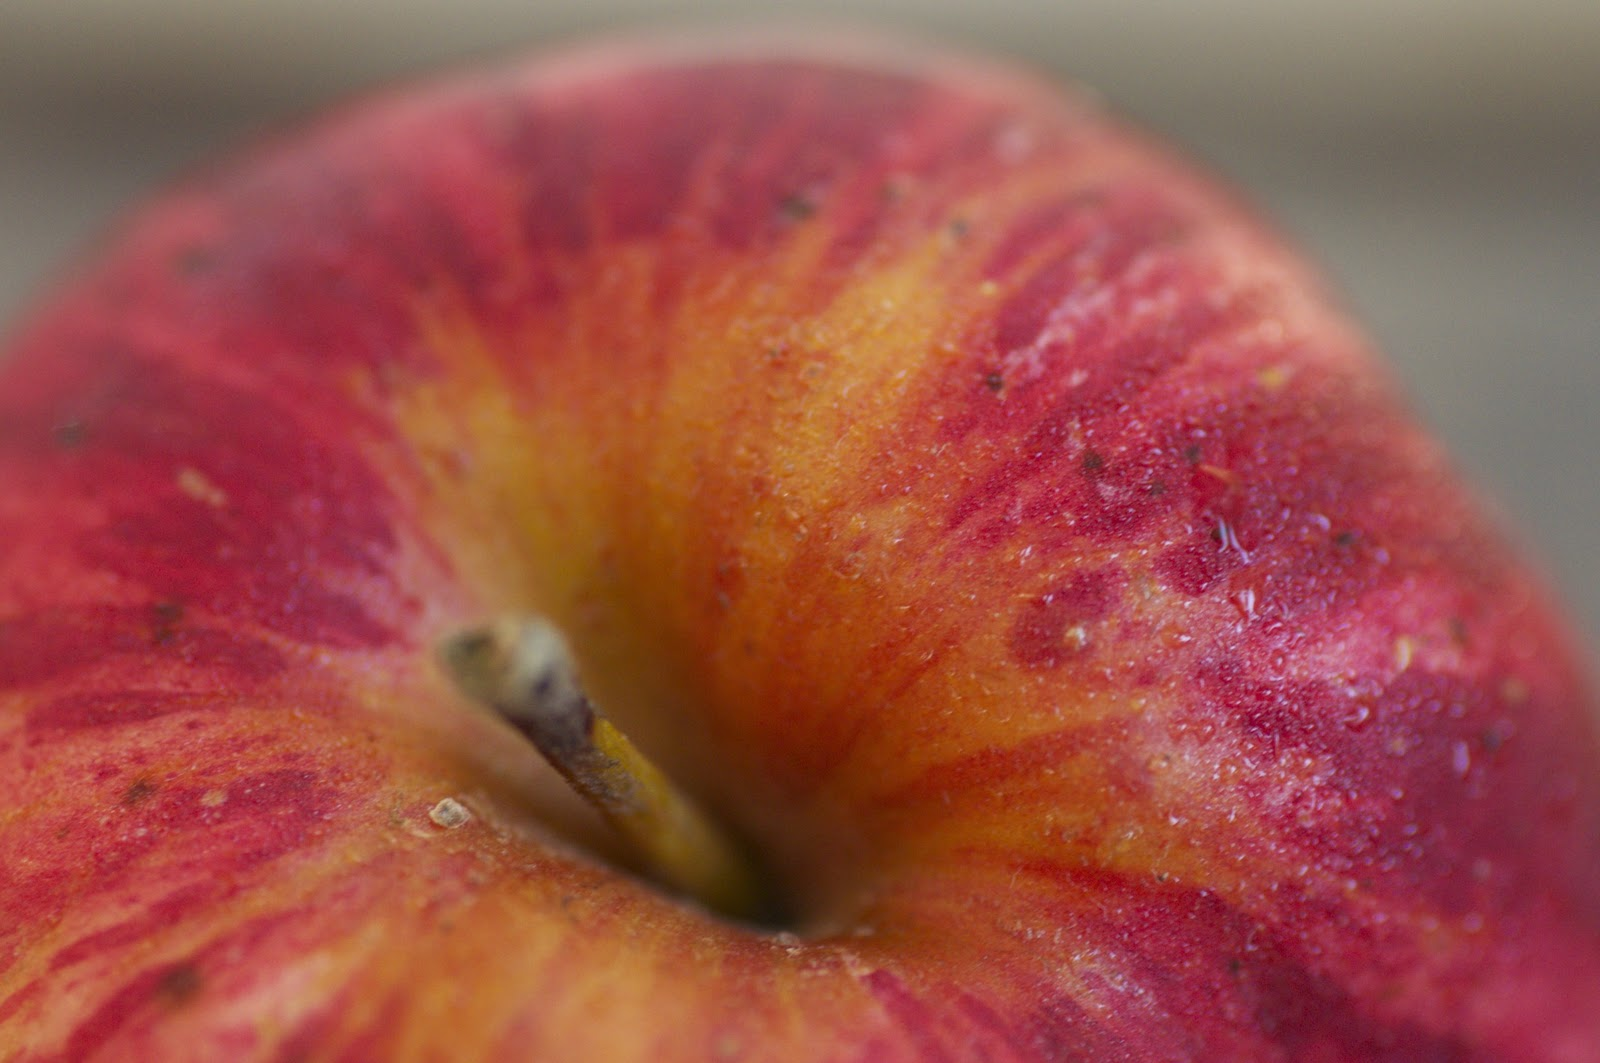 inspired by apple - photo #42